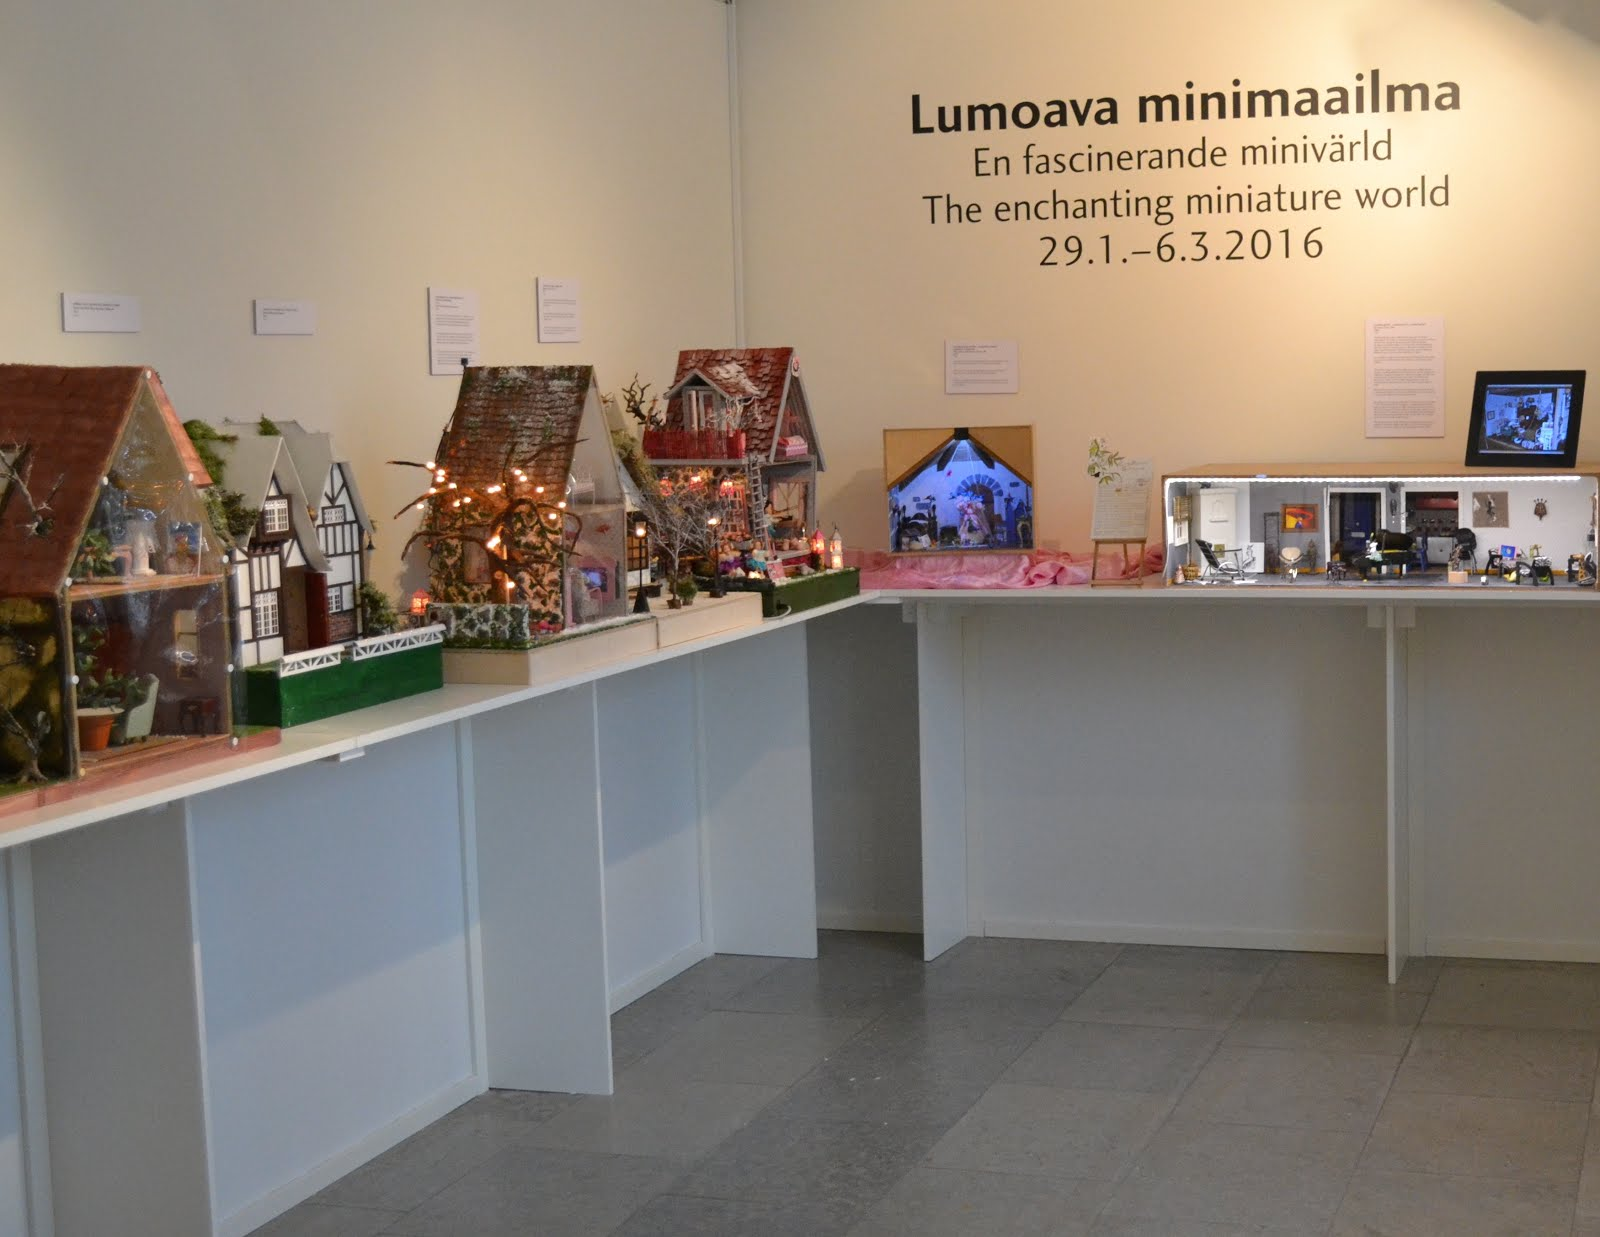 Lumoava minimaailma 2016